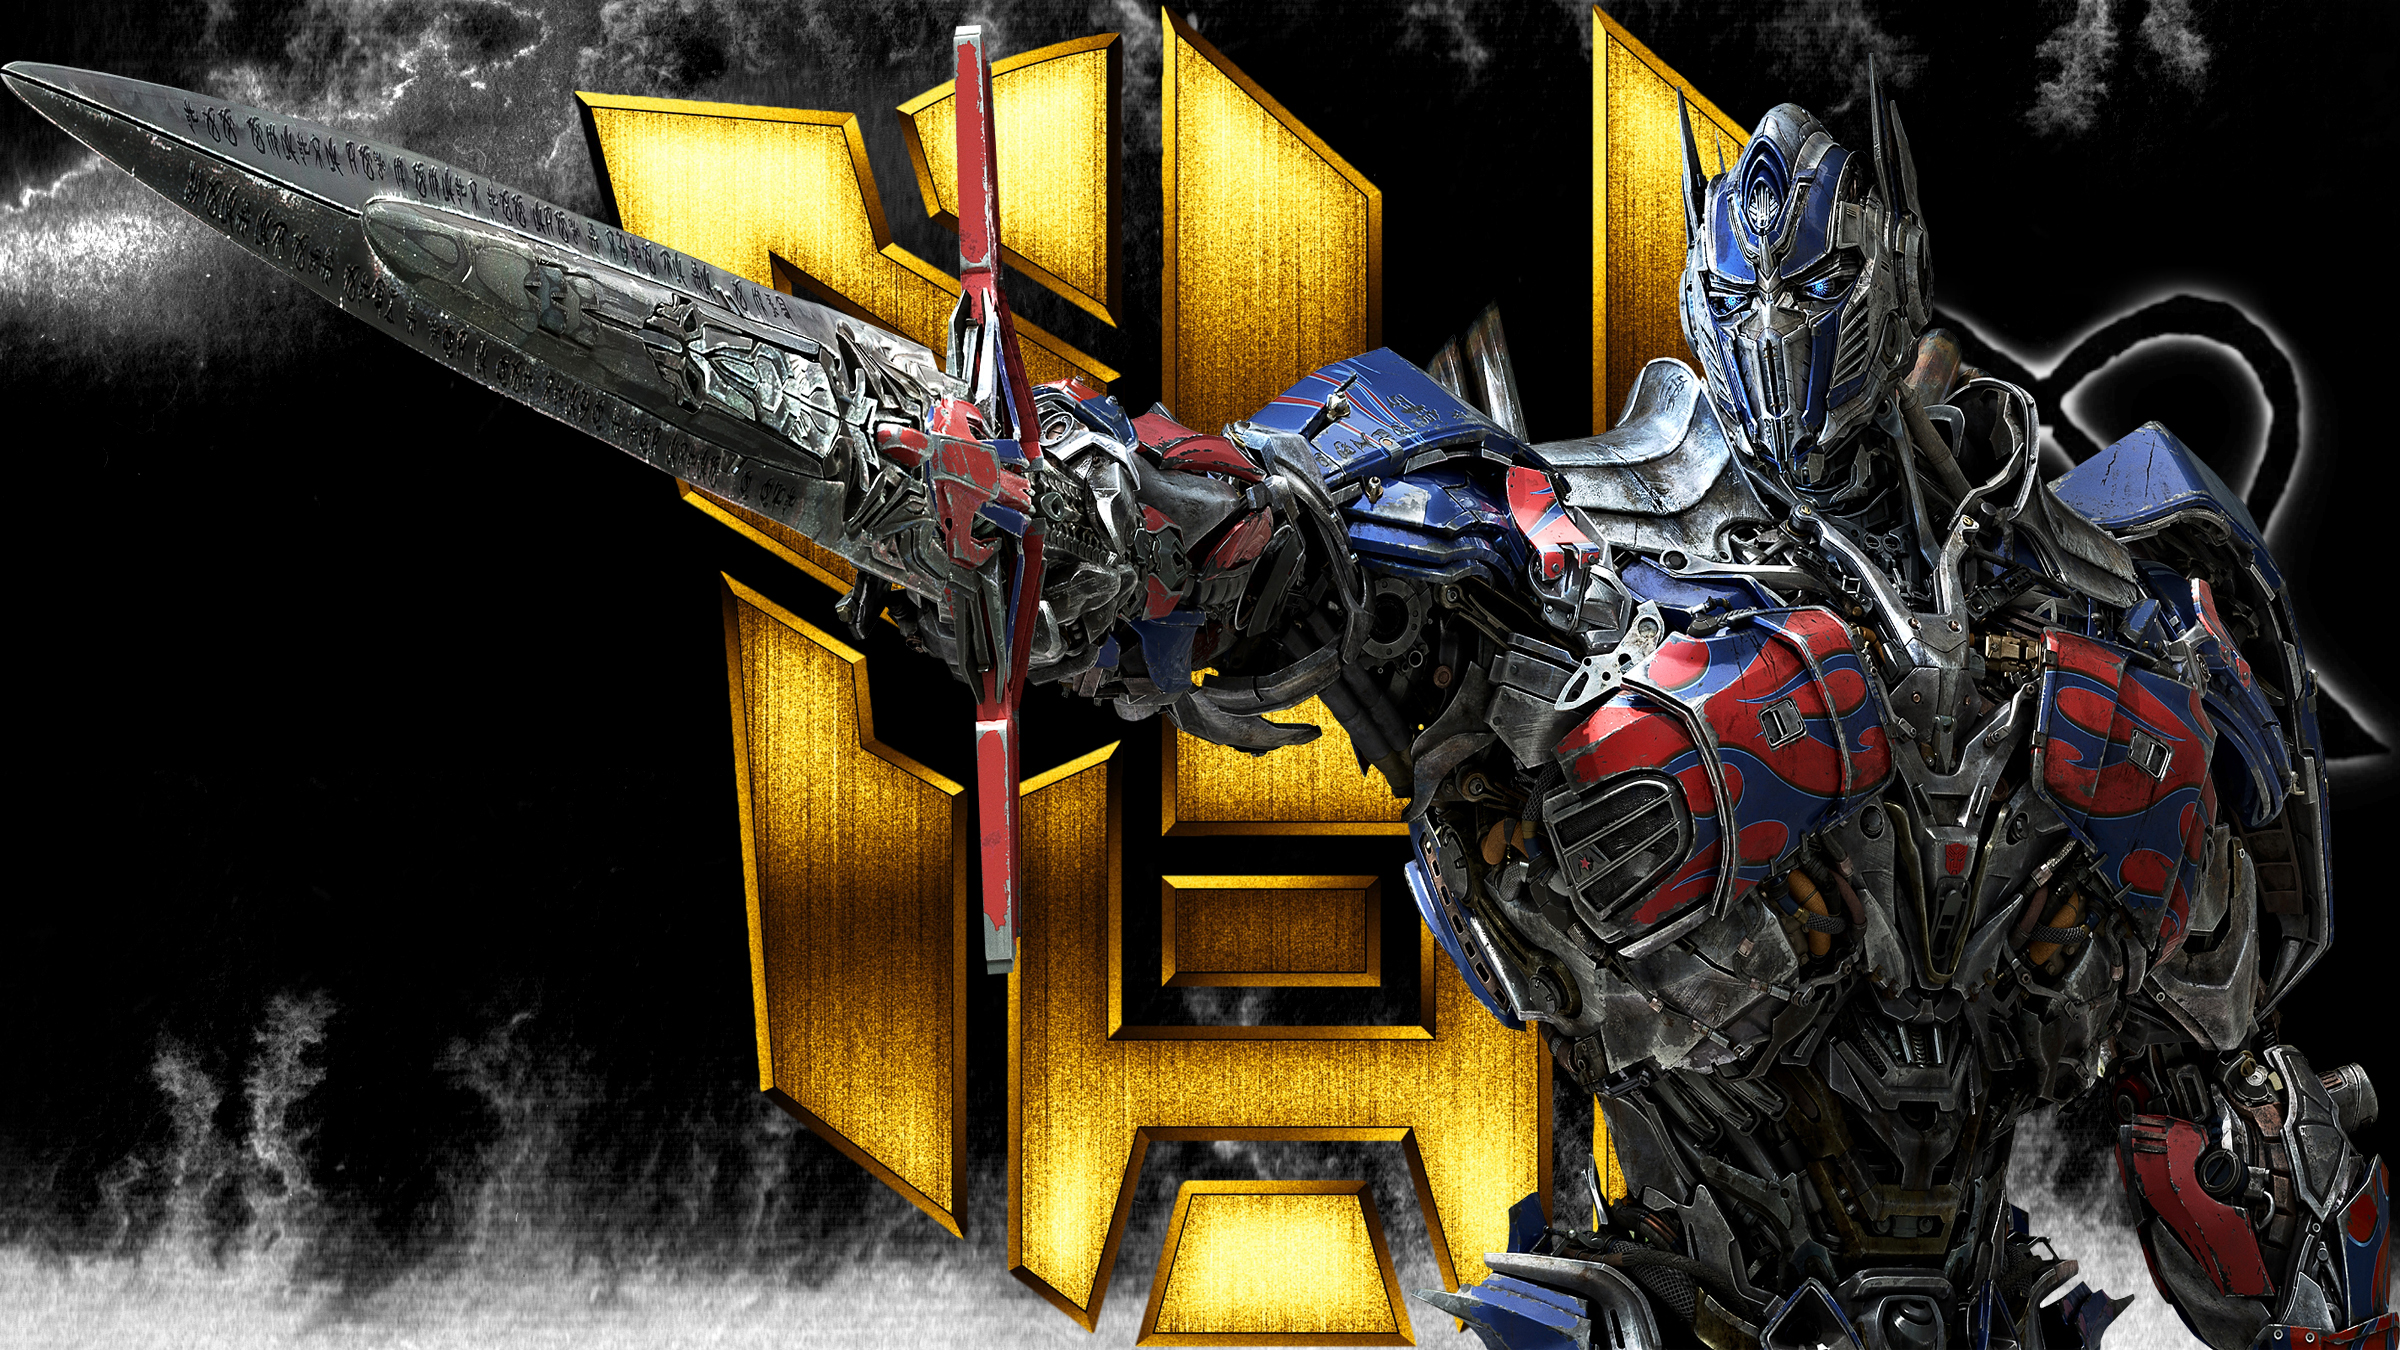 Tf 4 Age Of Extinction Optimus Prime Wallpaper By Rajivcr7 On